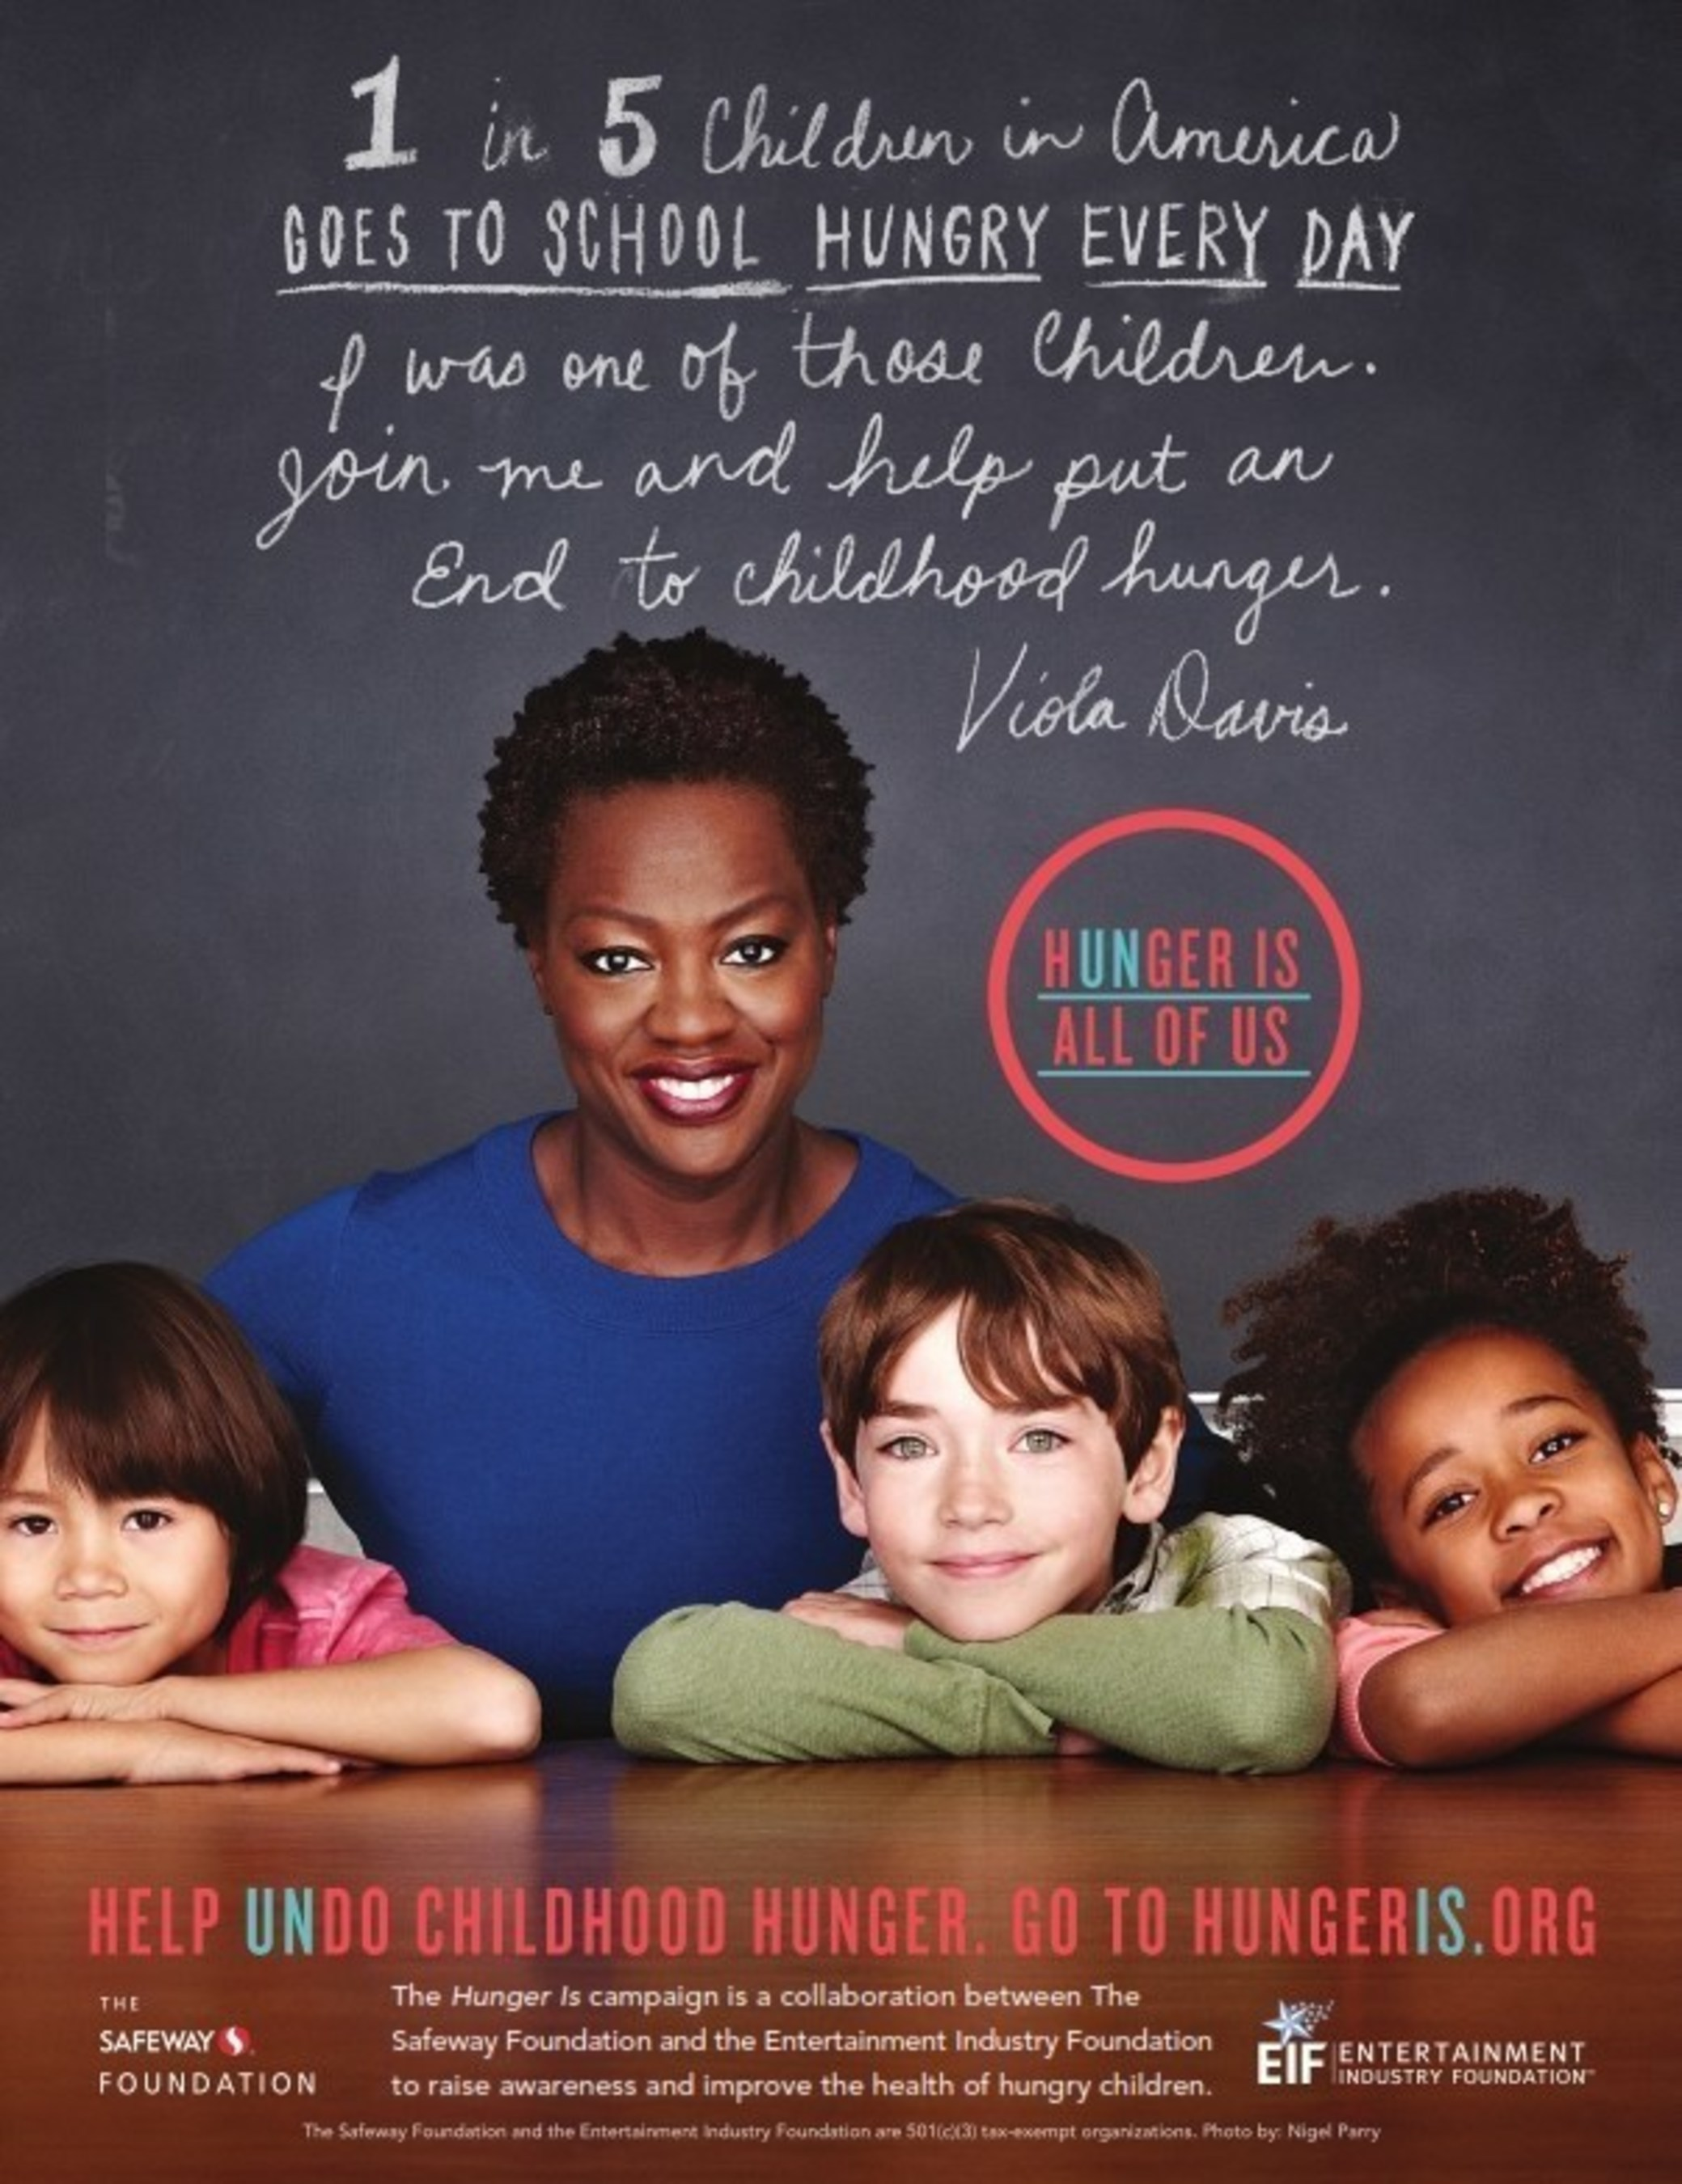 The Albertsons Companies Foundation and the Entertainment Industry Foundation Raise Additional $2 Million to Fight Childhood Hunger